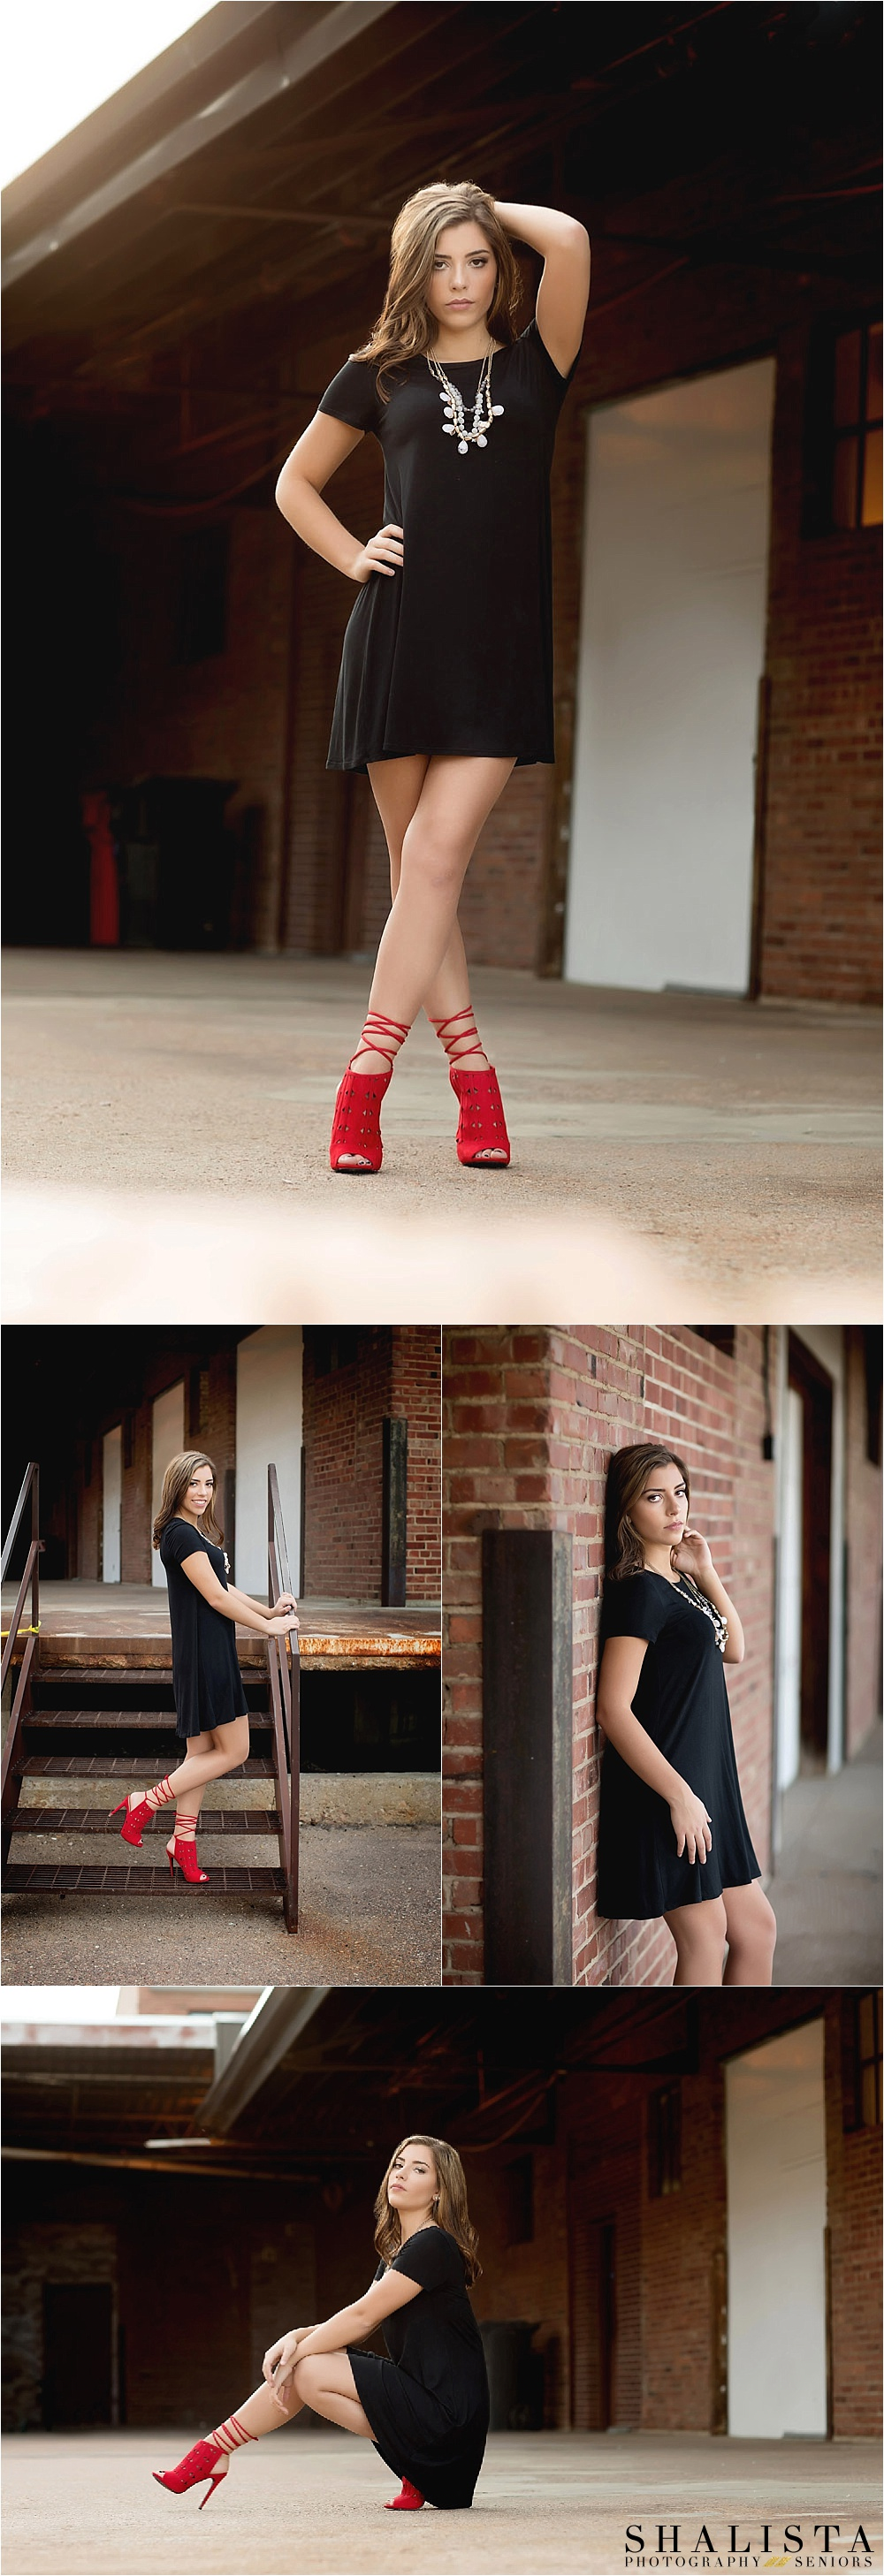 High Fashion Senior portraits in black dress red heels.